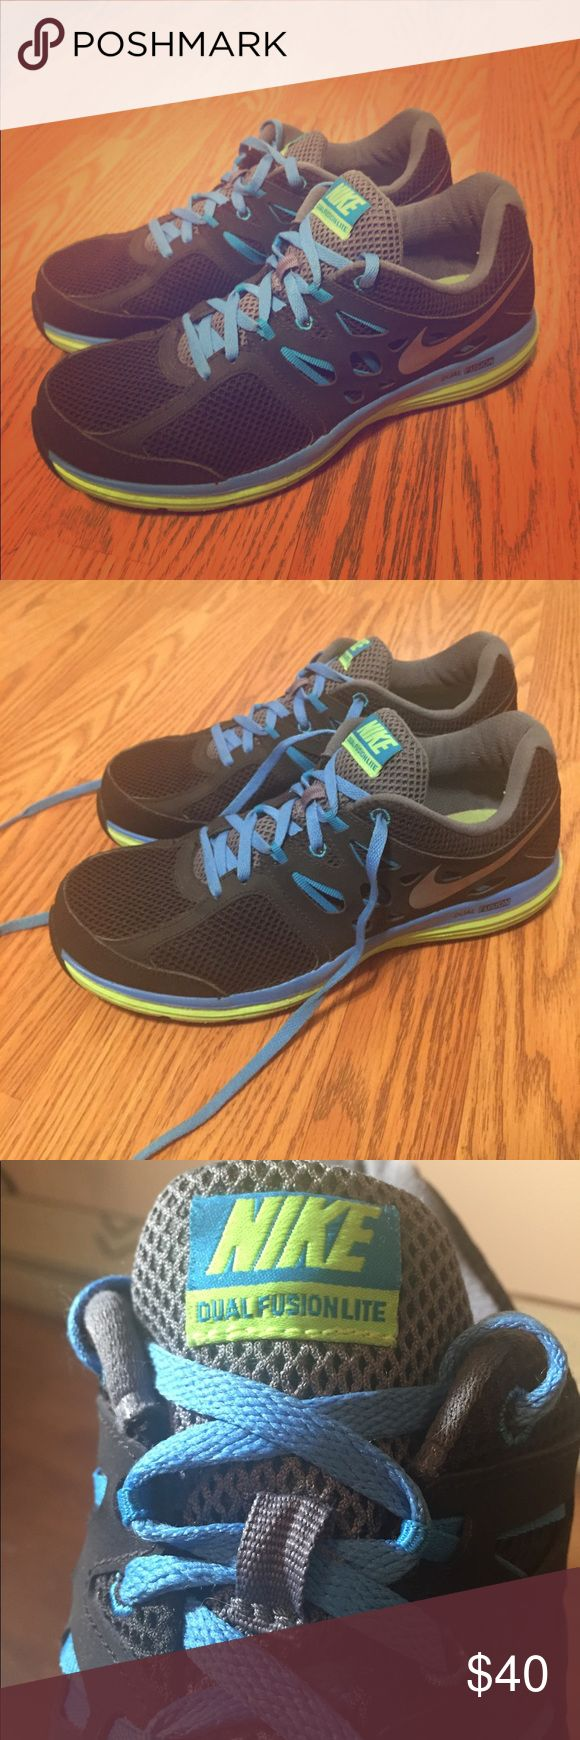 Nike Dual Fusion Lites Black, blue, and light green Nike Dual Fusion Lites. Worn only a couple of times. 9/10 Condition. Great shoes for running in my opinion. Very lightweight and comfortable. Open to offers and bundles. Nike Shoes Athletic Shoes